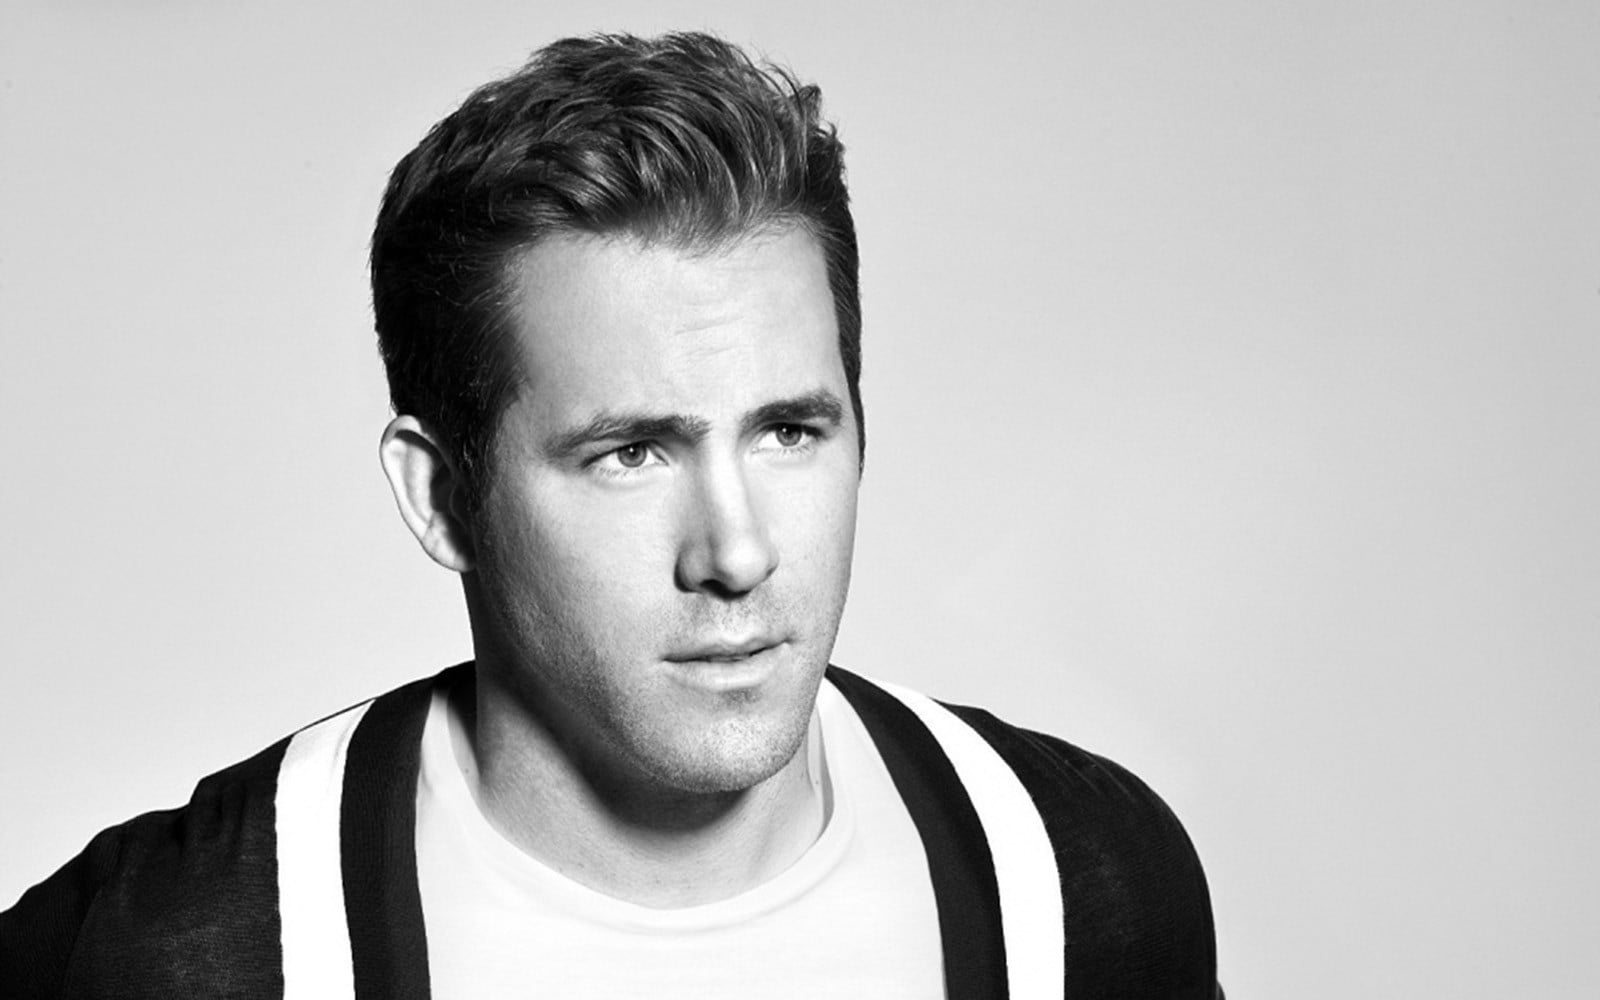 Deadpool Wallpaper Hd 1080p Ryan Reynolds Hd Wallpapers Free Download